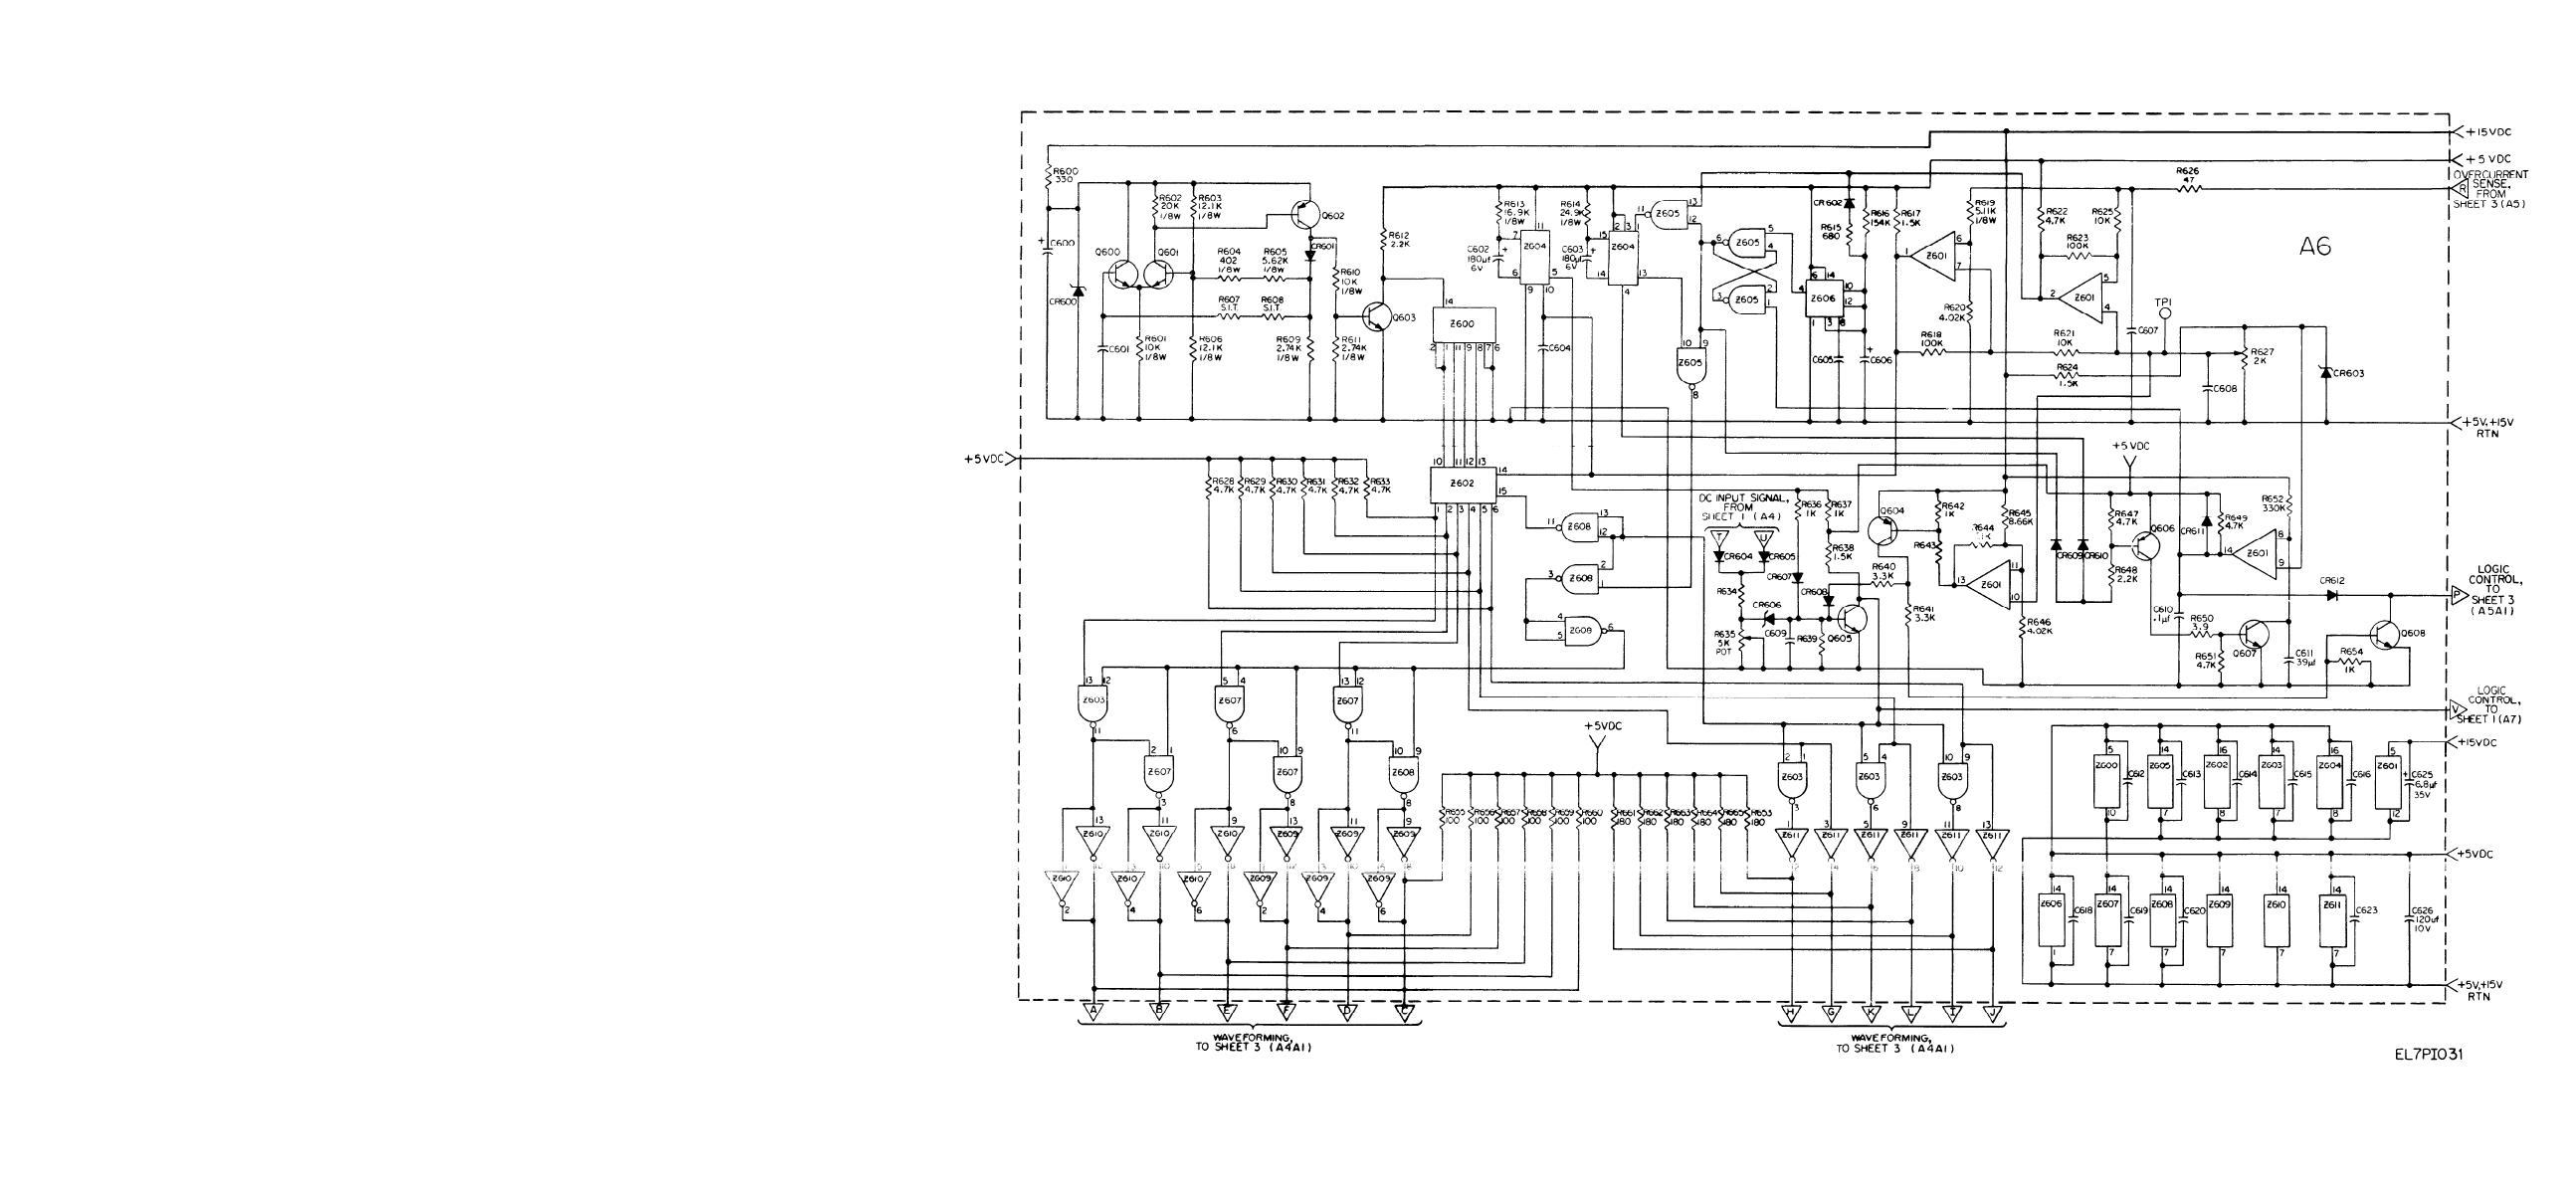 Circuit Diagram For Inverter Welder Page 4 Wiring And Of An Welding Schematic Electrical House U2022 Rh Universalservices Co